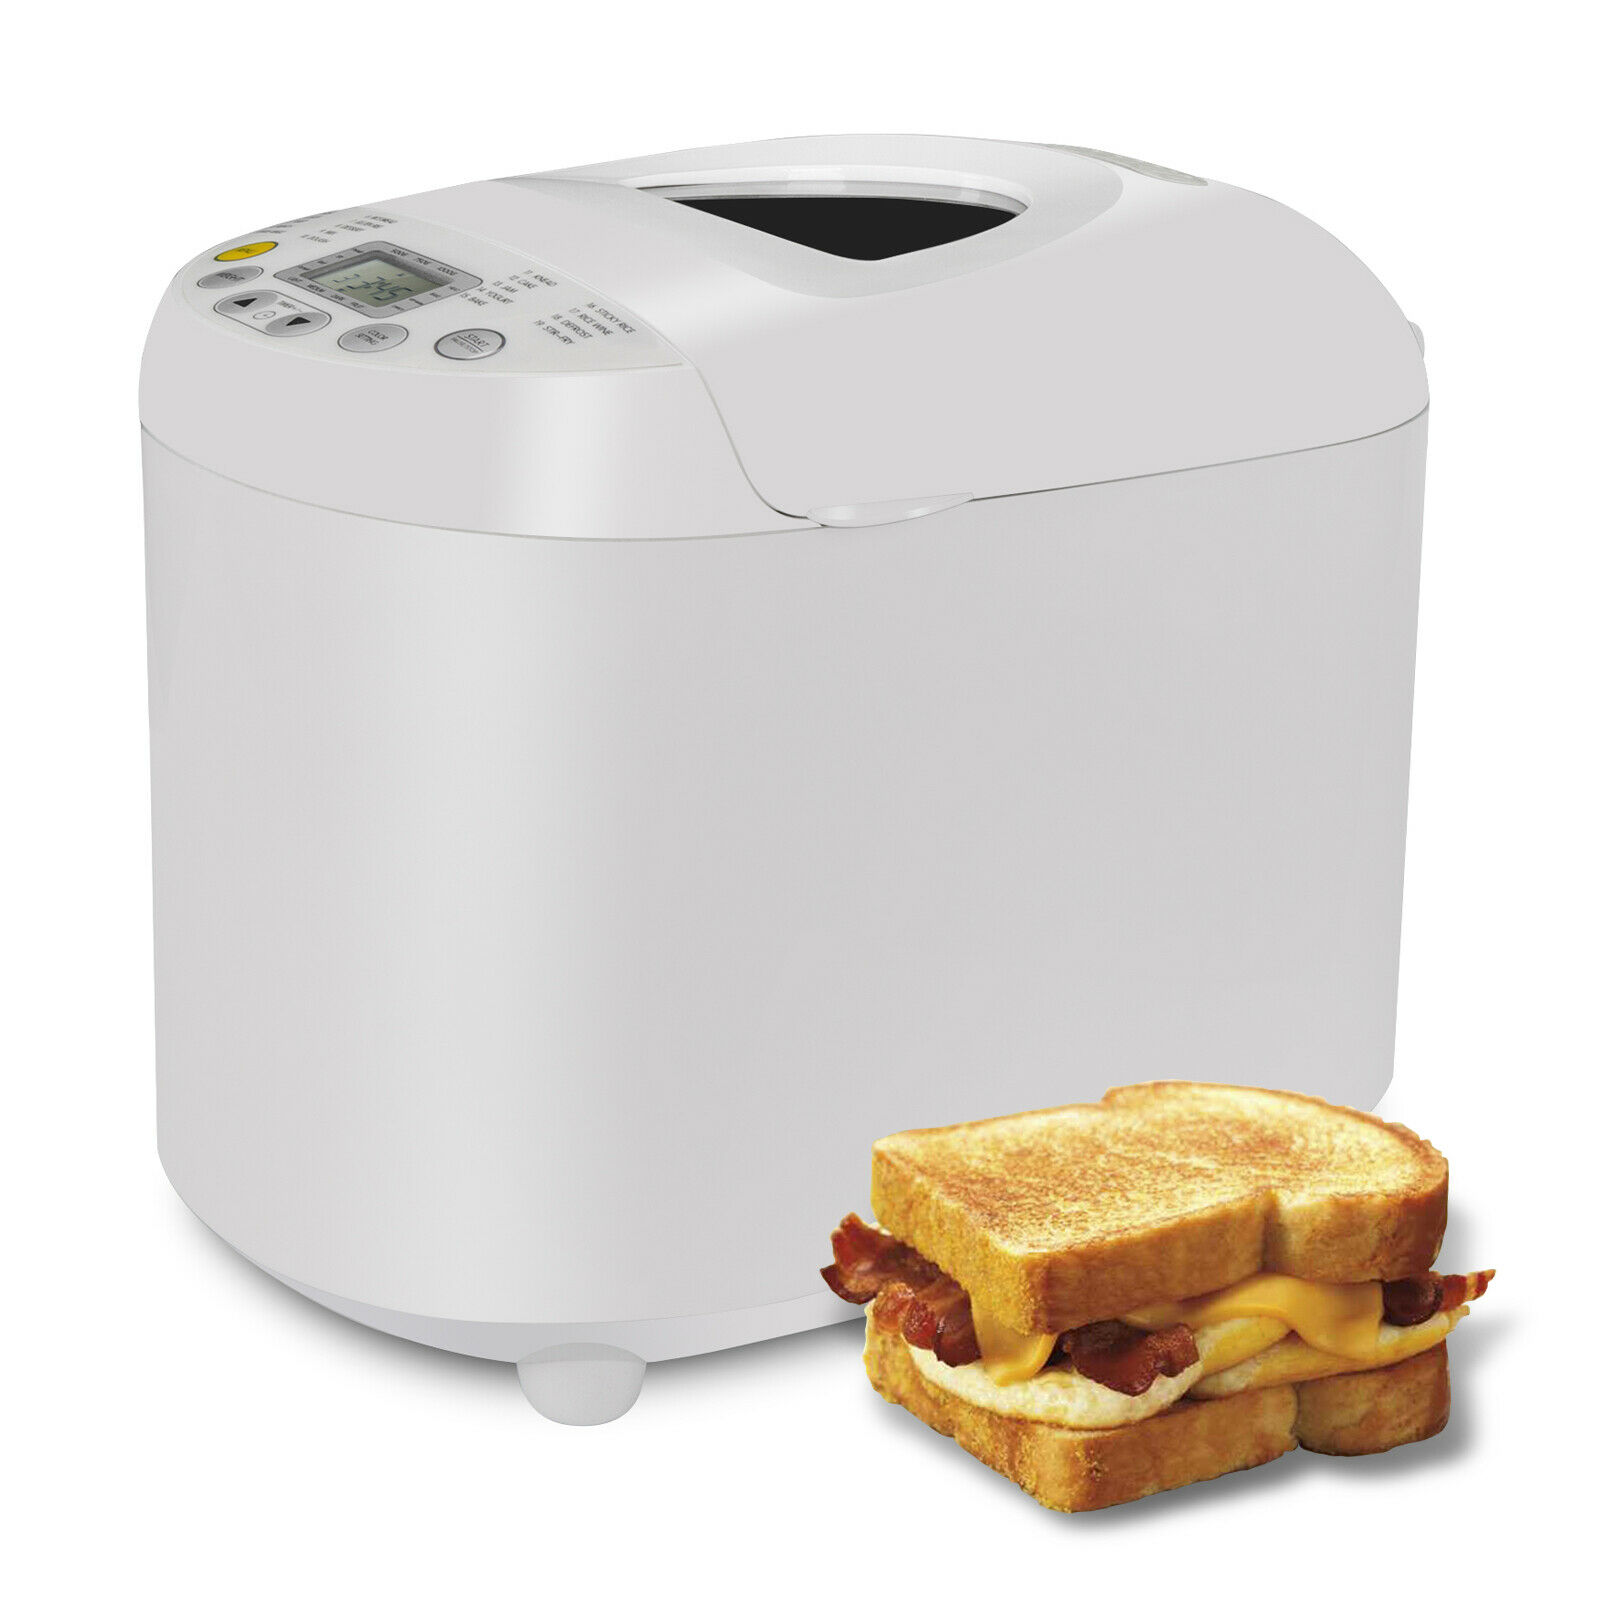 3 Loaf Sizes and 3 Crust Color Bread Maker Machine 550W 2.2 lbs W/ Top Window 16